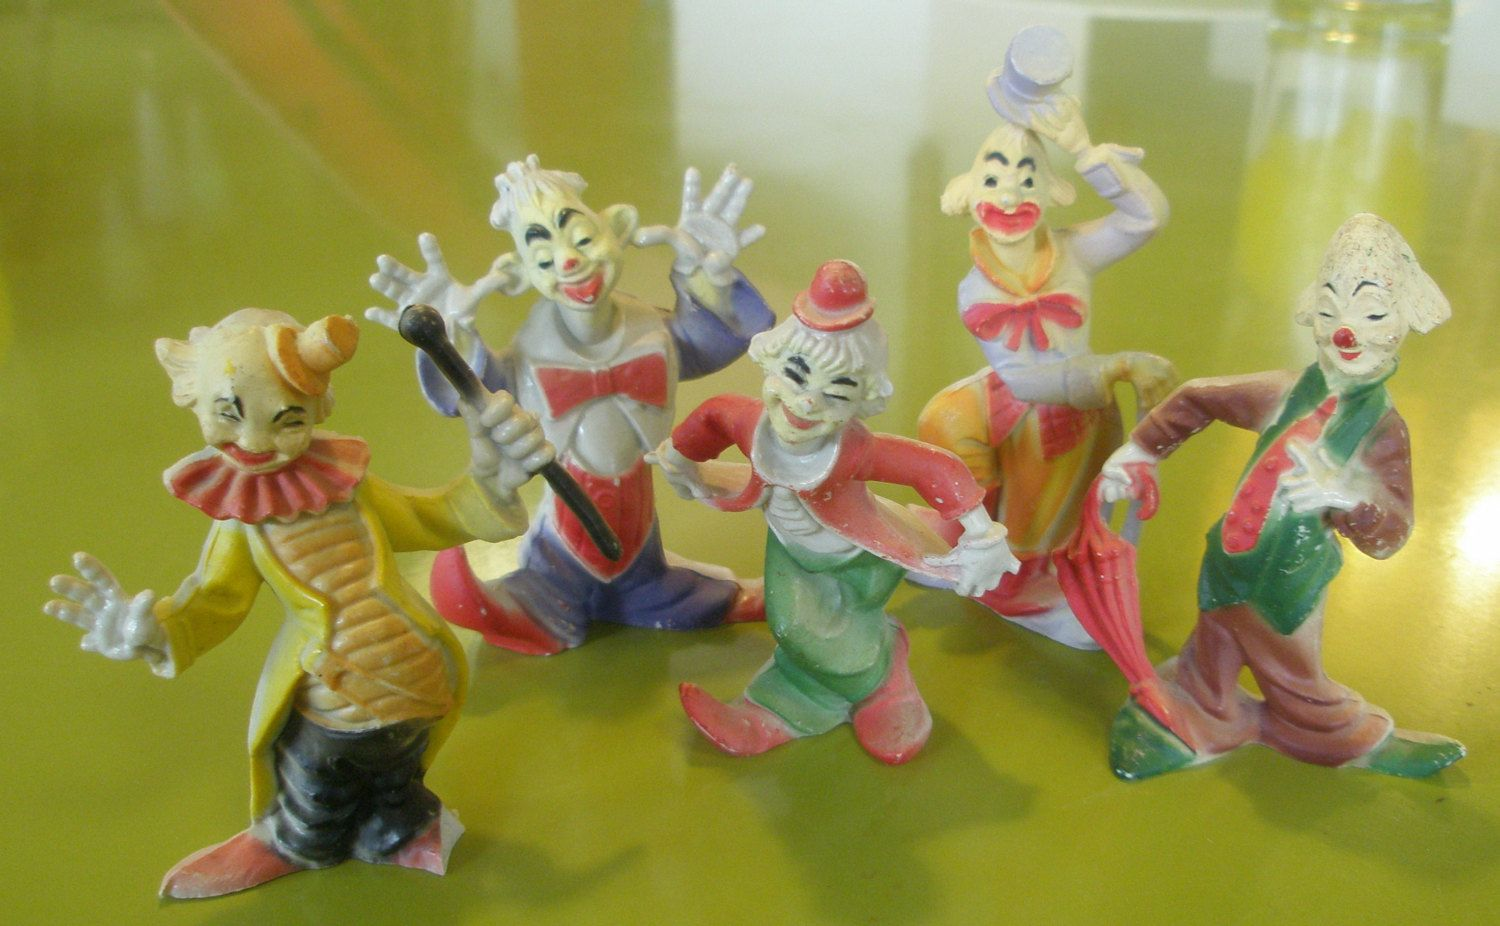 5 Vintage 1960s Mini Clown Cake Toppers Made In Hong Kong by